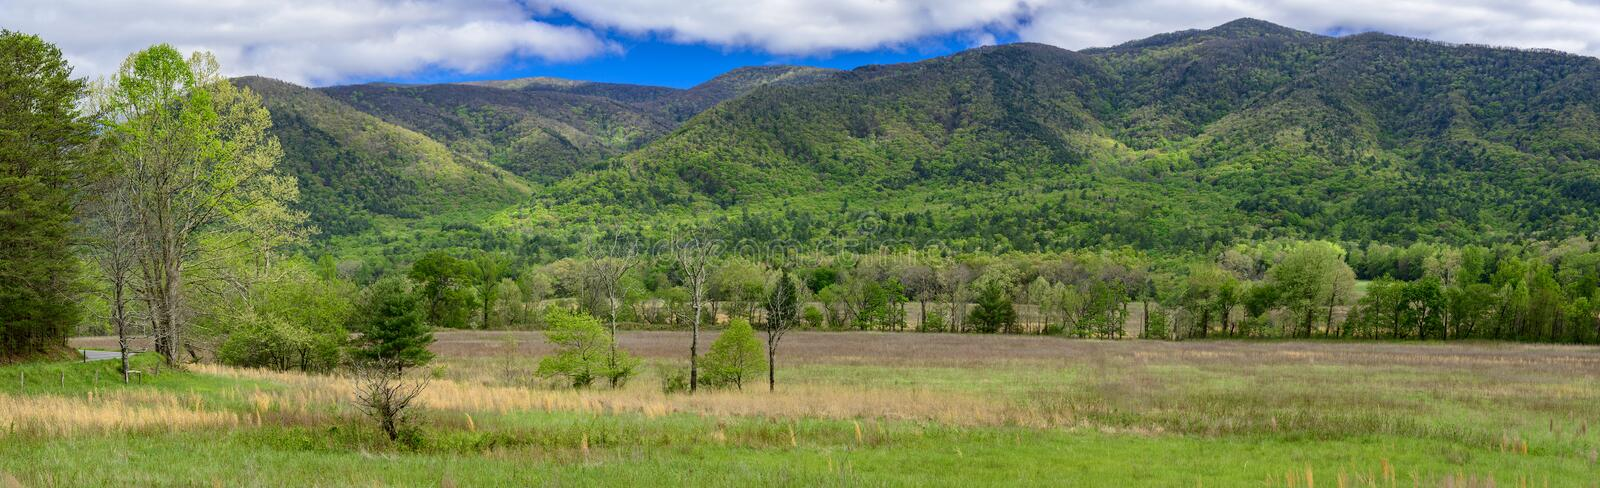 A springtime panorama from the Cades Cove section of the Great Smoky Mountains National Park royalty free stock images